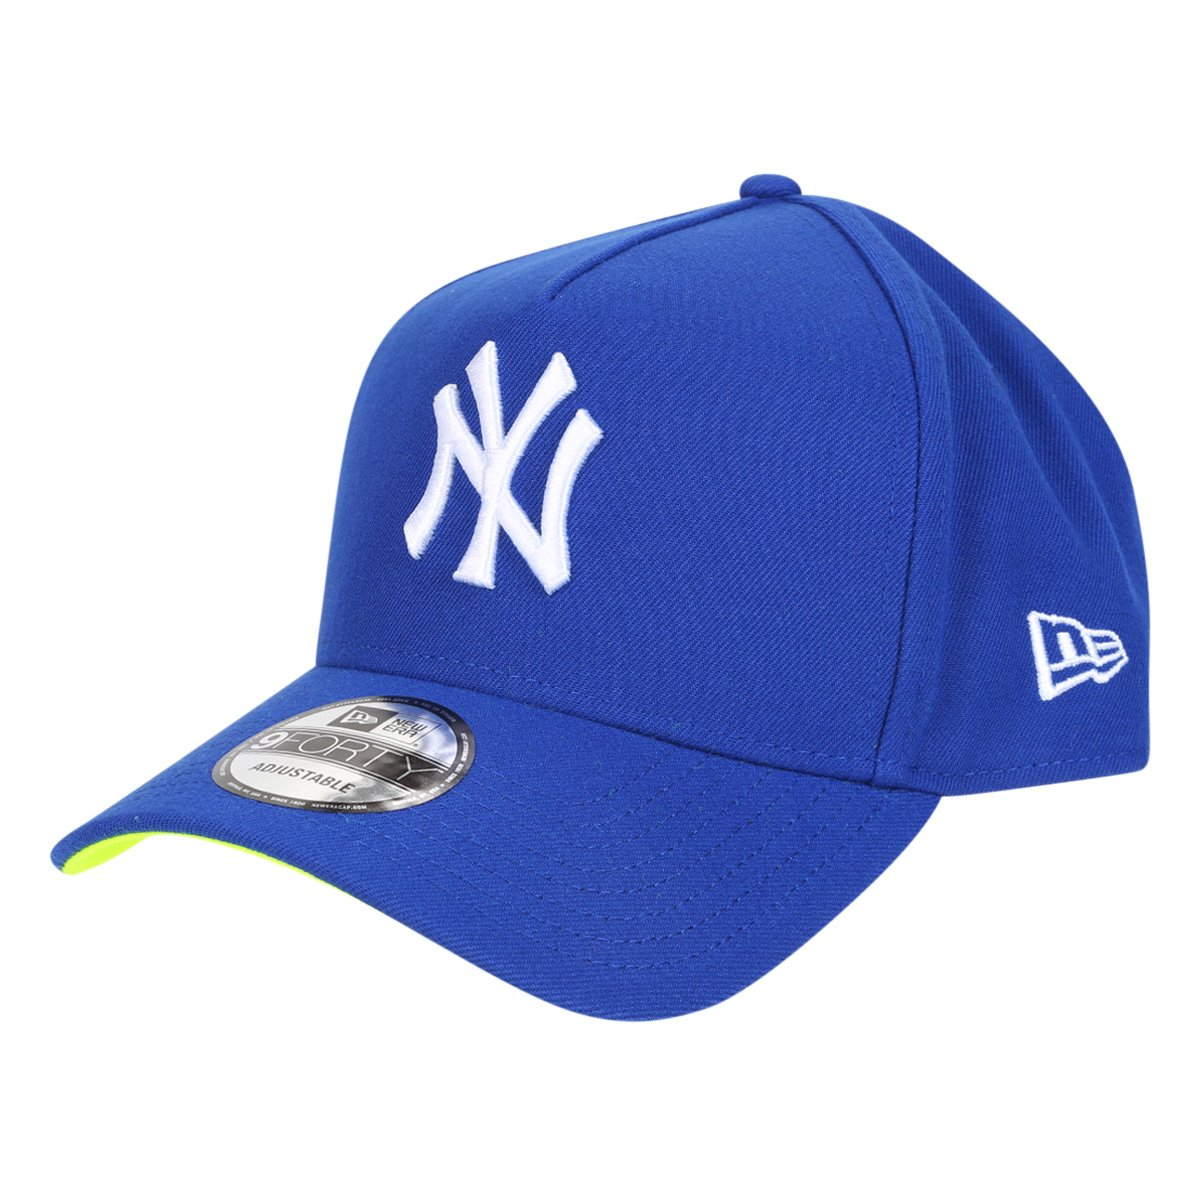 Boné New Era MBL New York Yankees Aba Curva Snapback Urban Tech World Ligth 9Forty